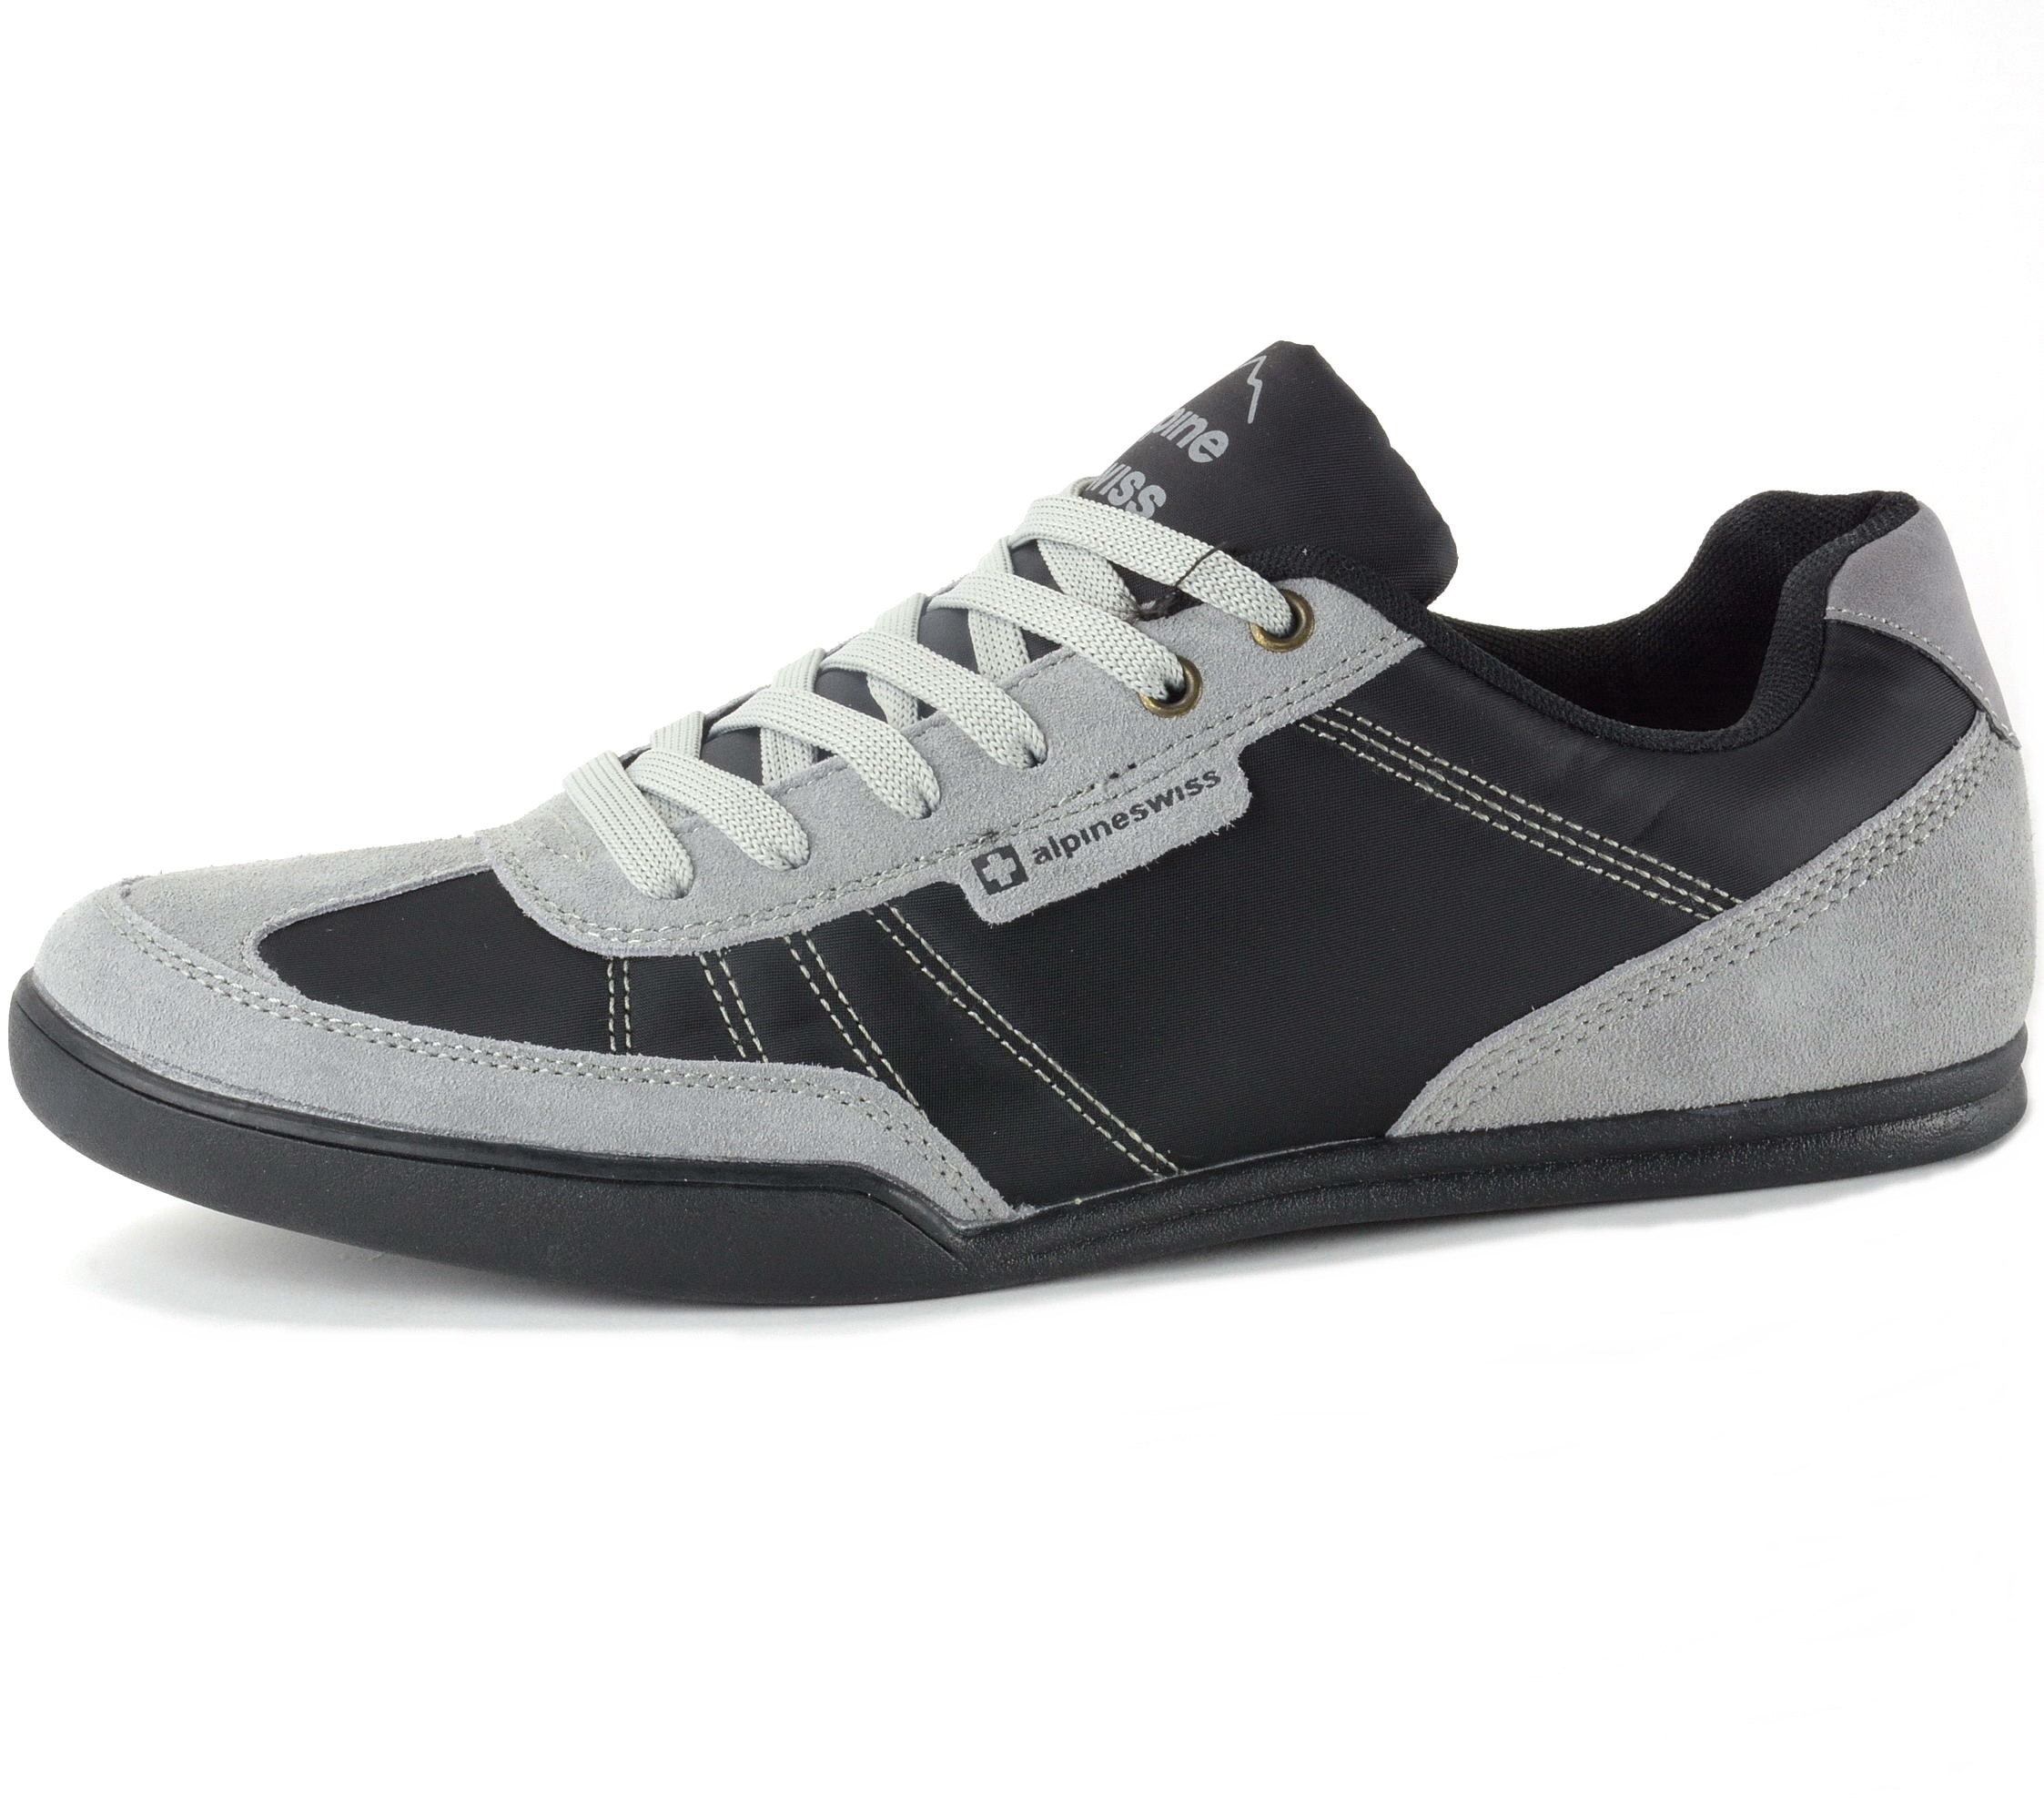 alpine swiss marco mens casual shoes sporty lace up jean